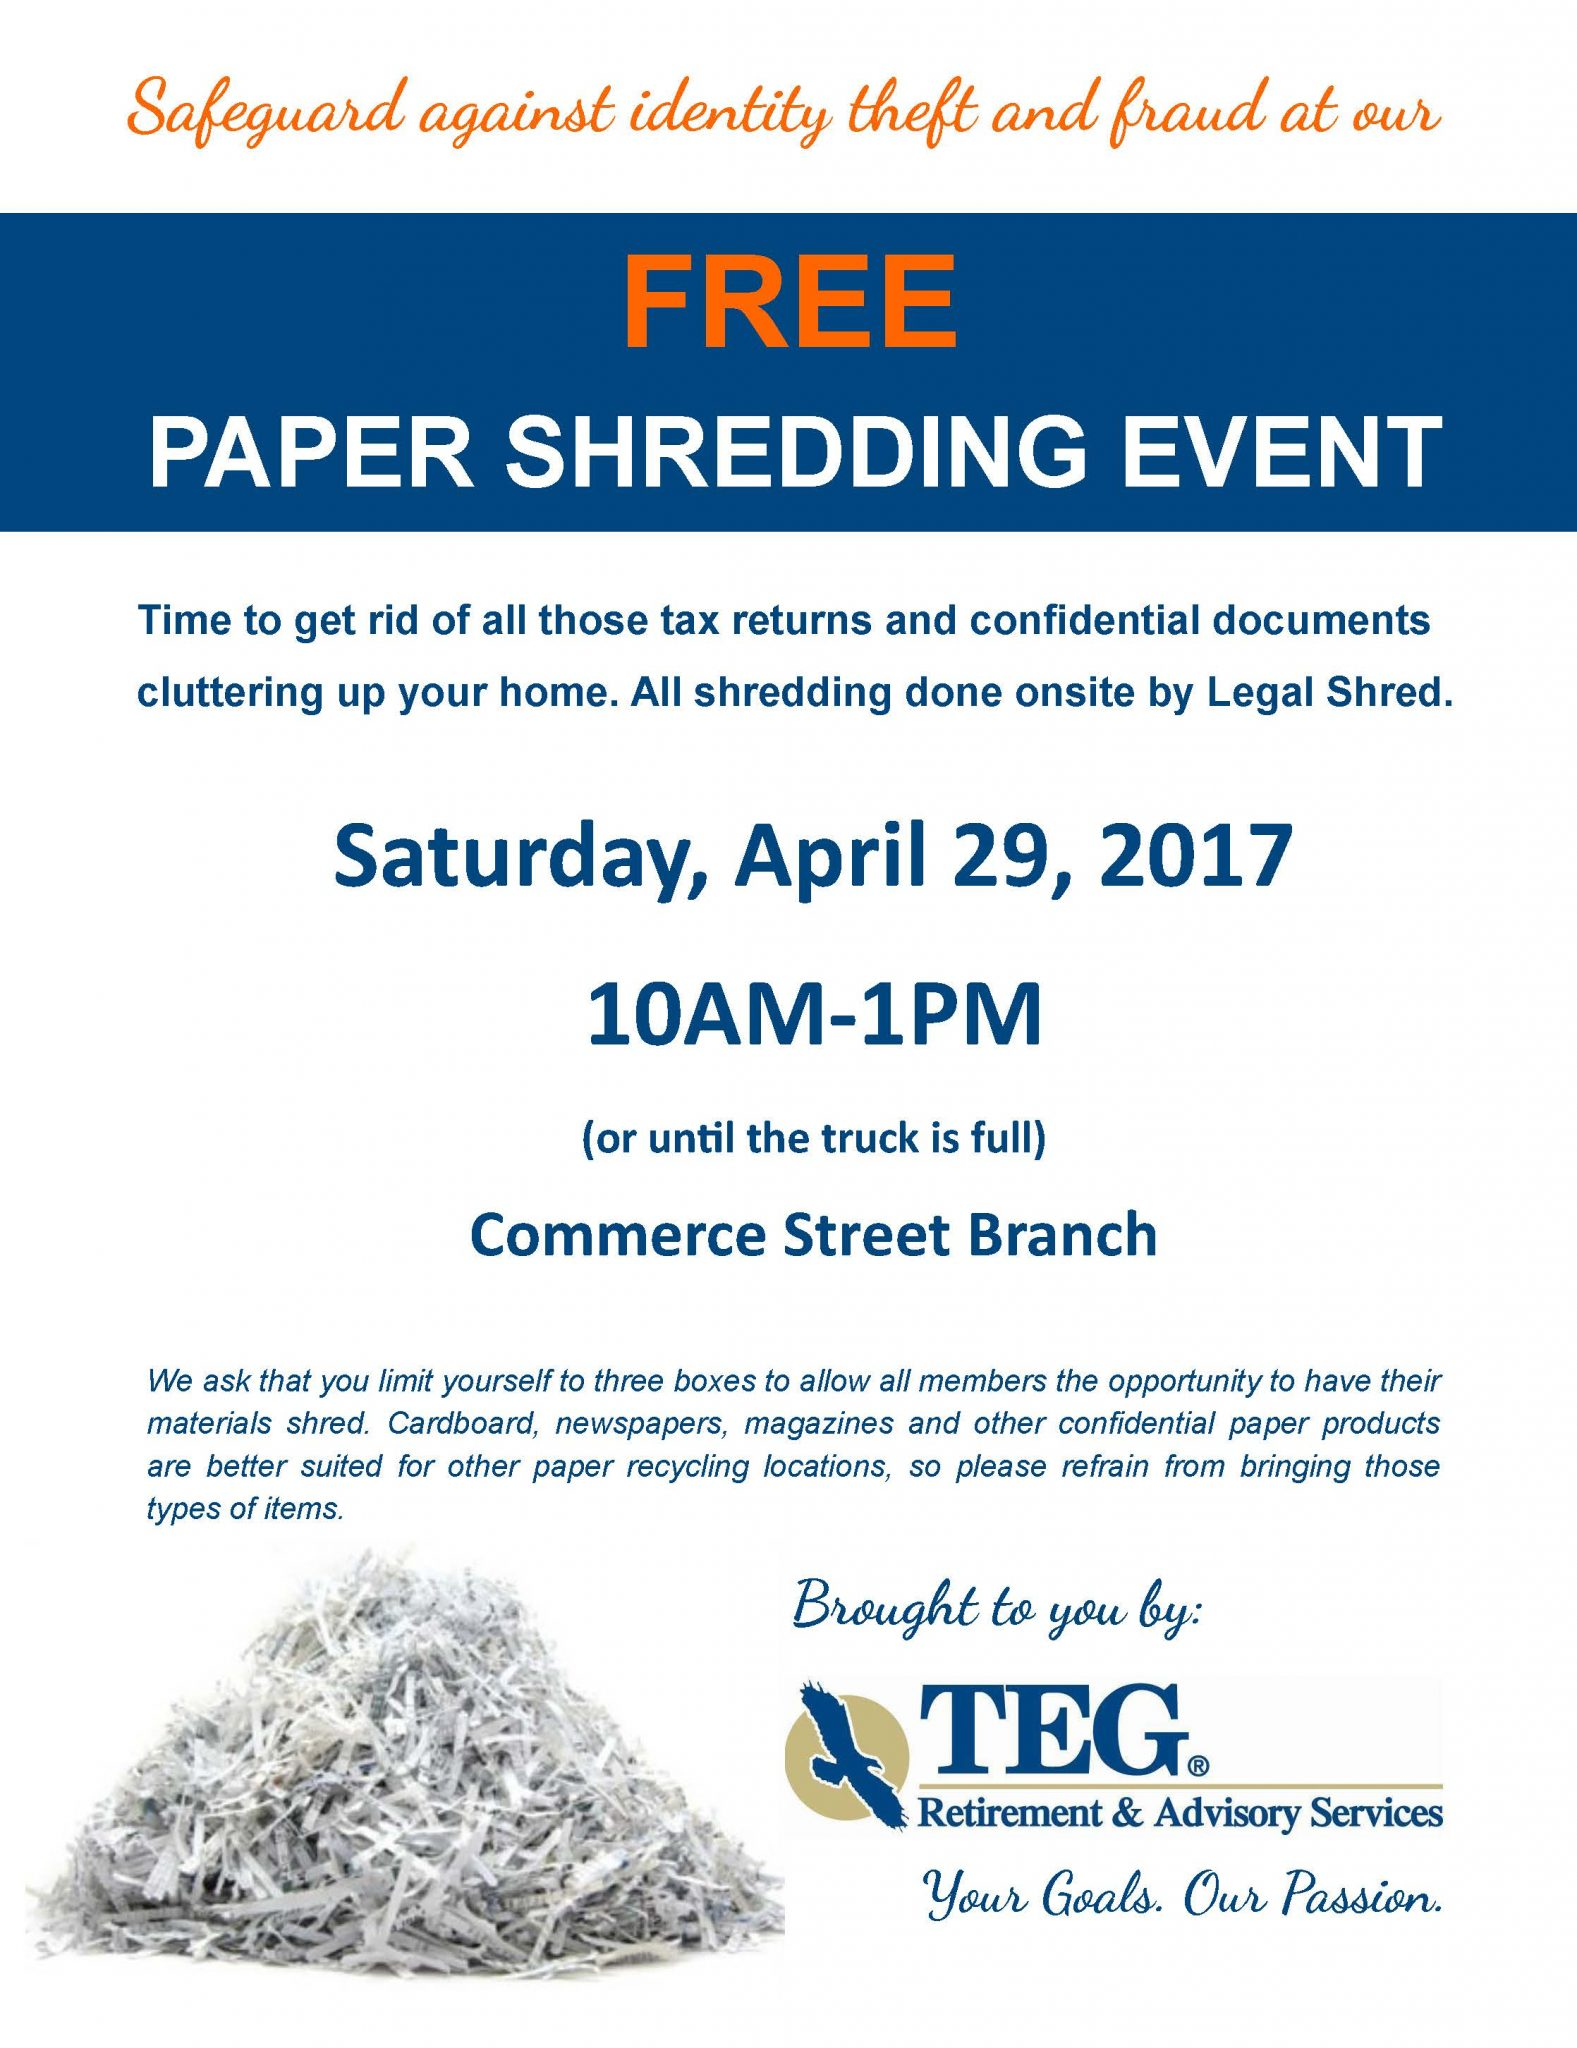 Shred Event Presented By TEG Retirement Advisory Services